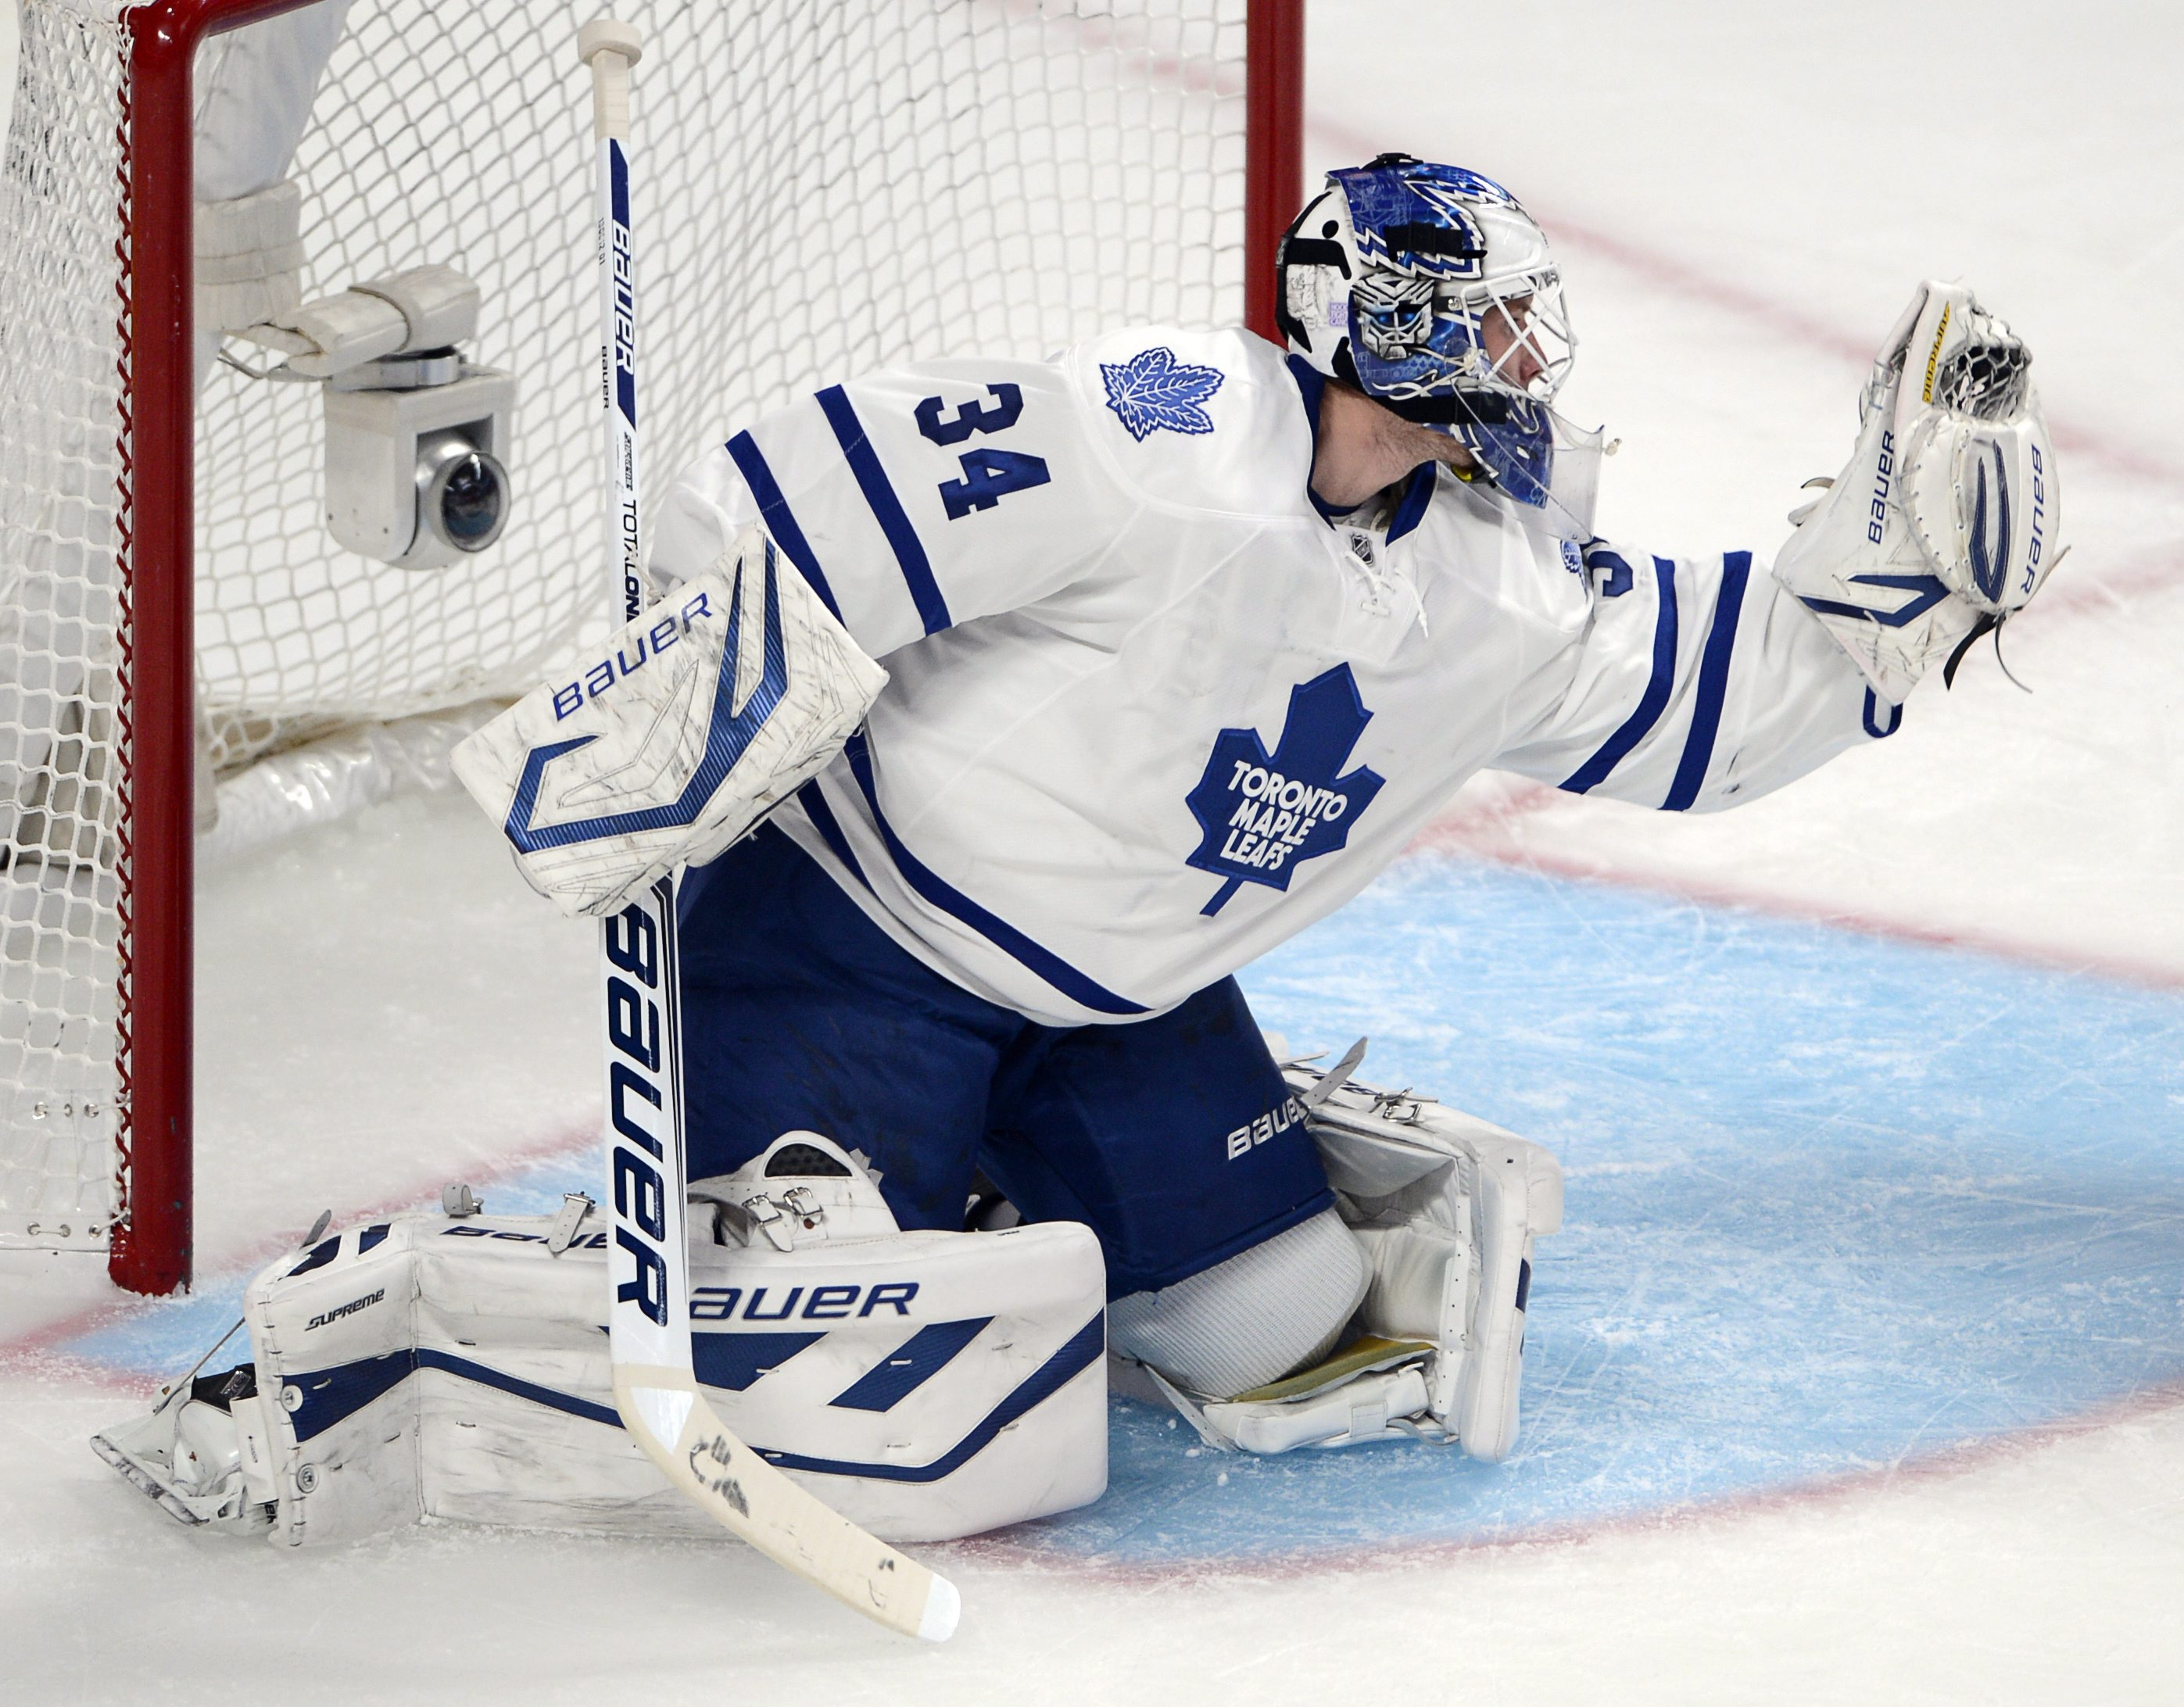 Toronto Maple Leafs goalie James Reimer (34) makes a save against the Montreal Canadiens during first period of an NHL hockey game on Tuesday, Oct. 1, 2013, in Montreal. Toronto won the season opener 4-3